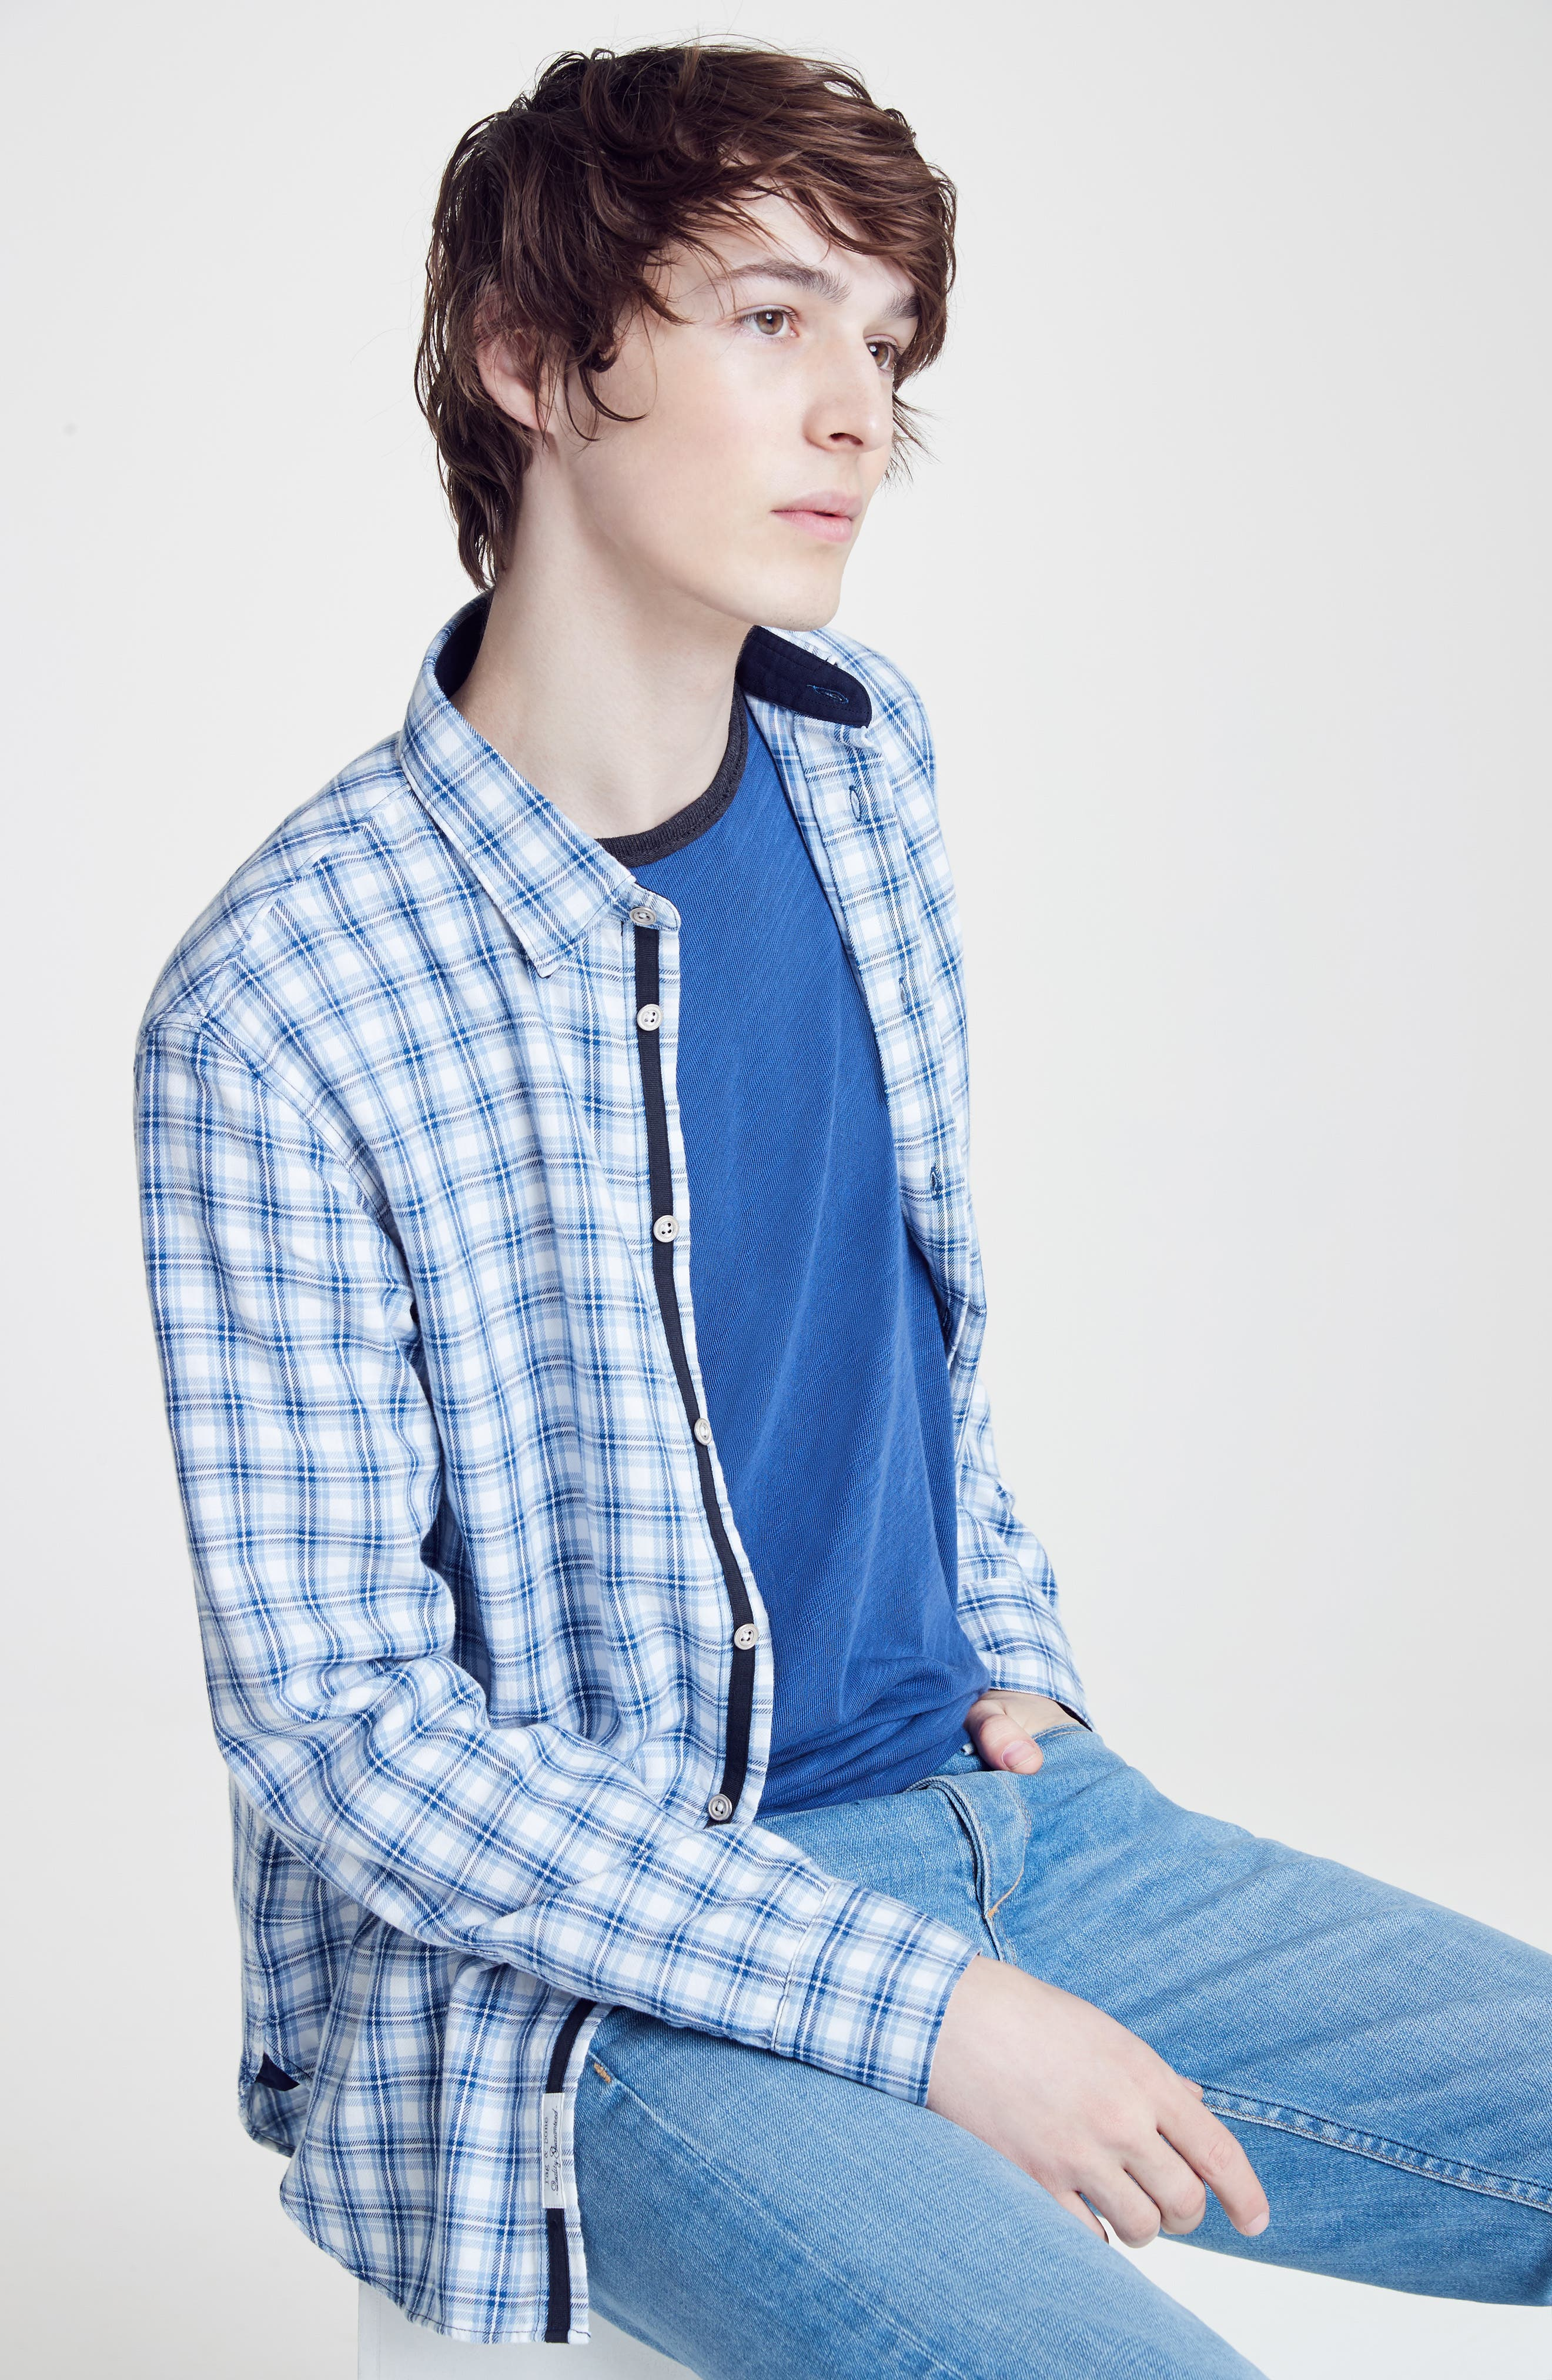 rag & bone Sport Shirt, T-Shirt & Skinny Fit Jeans Outfit with Accessories